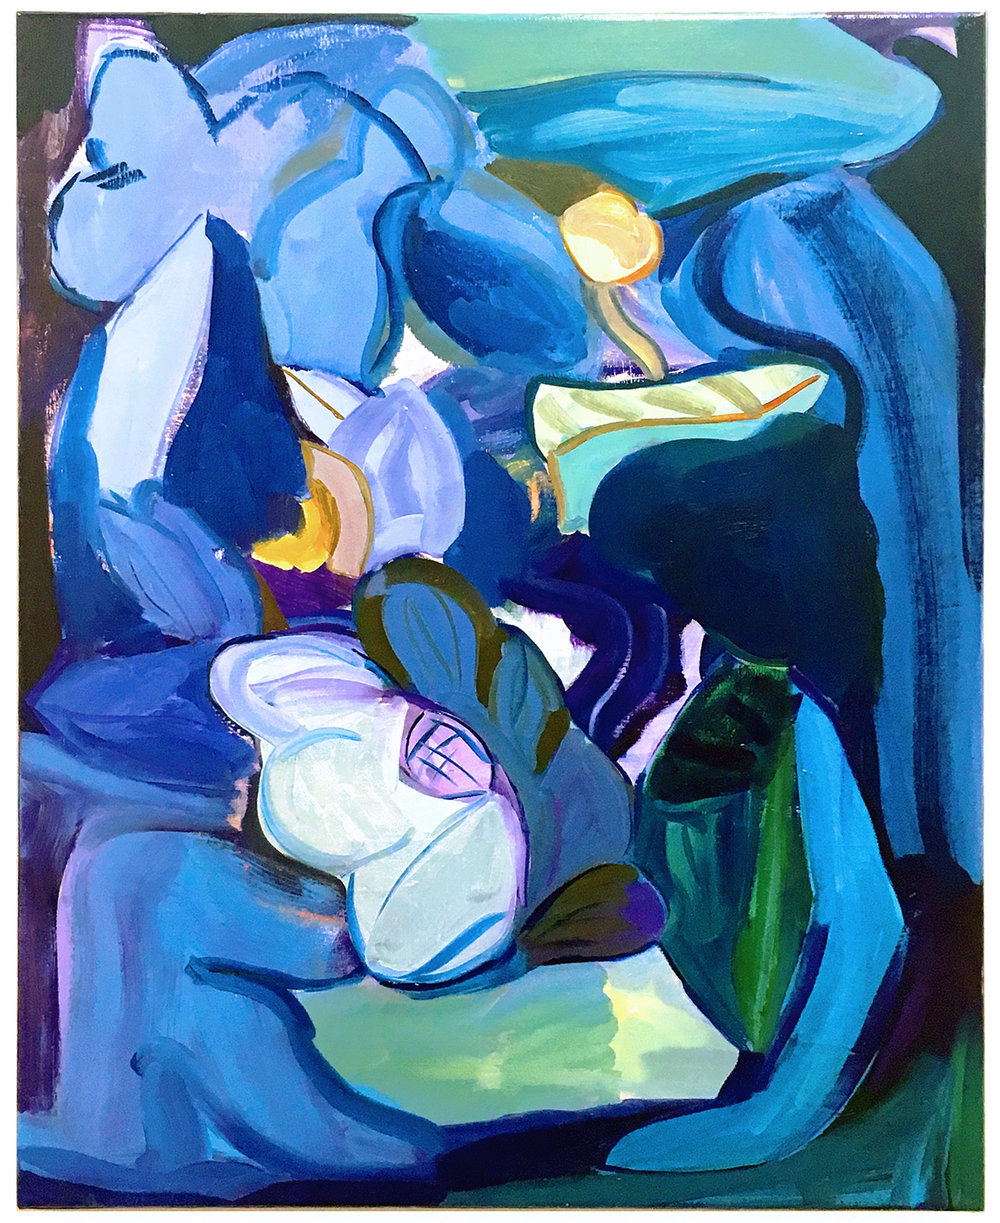 'Dumbo Garland (blue)', 2016